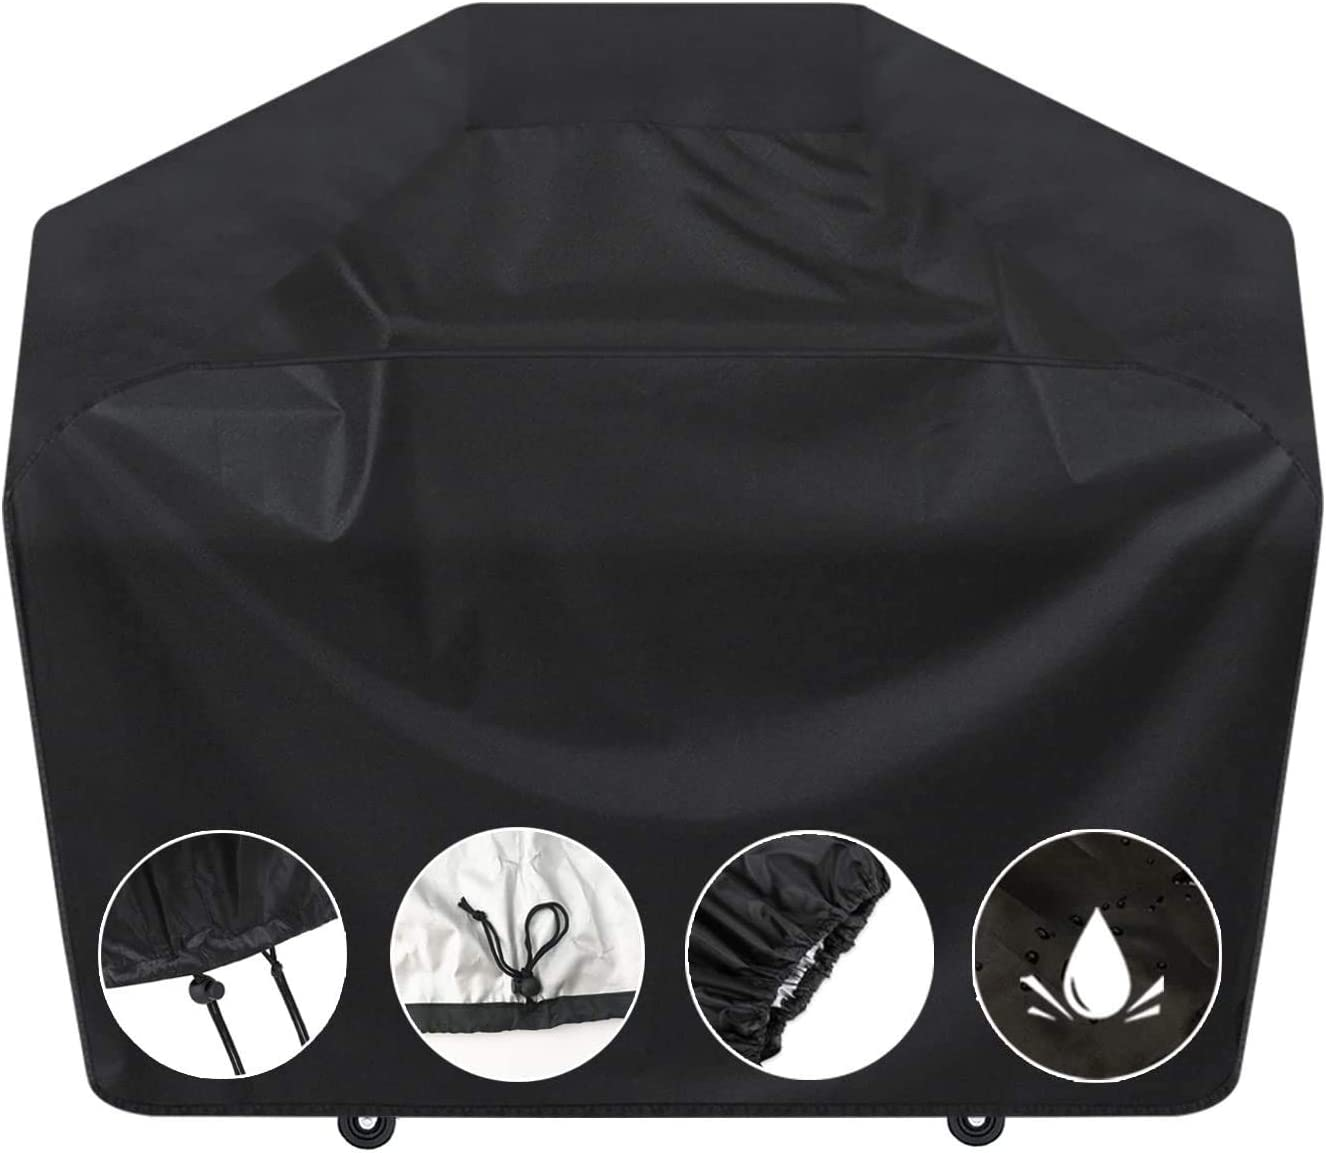 SARCCH Grill Cover, 58- inches BBQ Special Grill Cover, Waterproof, UV and Fade Resistant, Durable and Convenient, Black,Fits Grills of Weber Char-Broil Nexgrill Brinkmann and More, : Garden & Outdoor